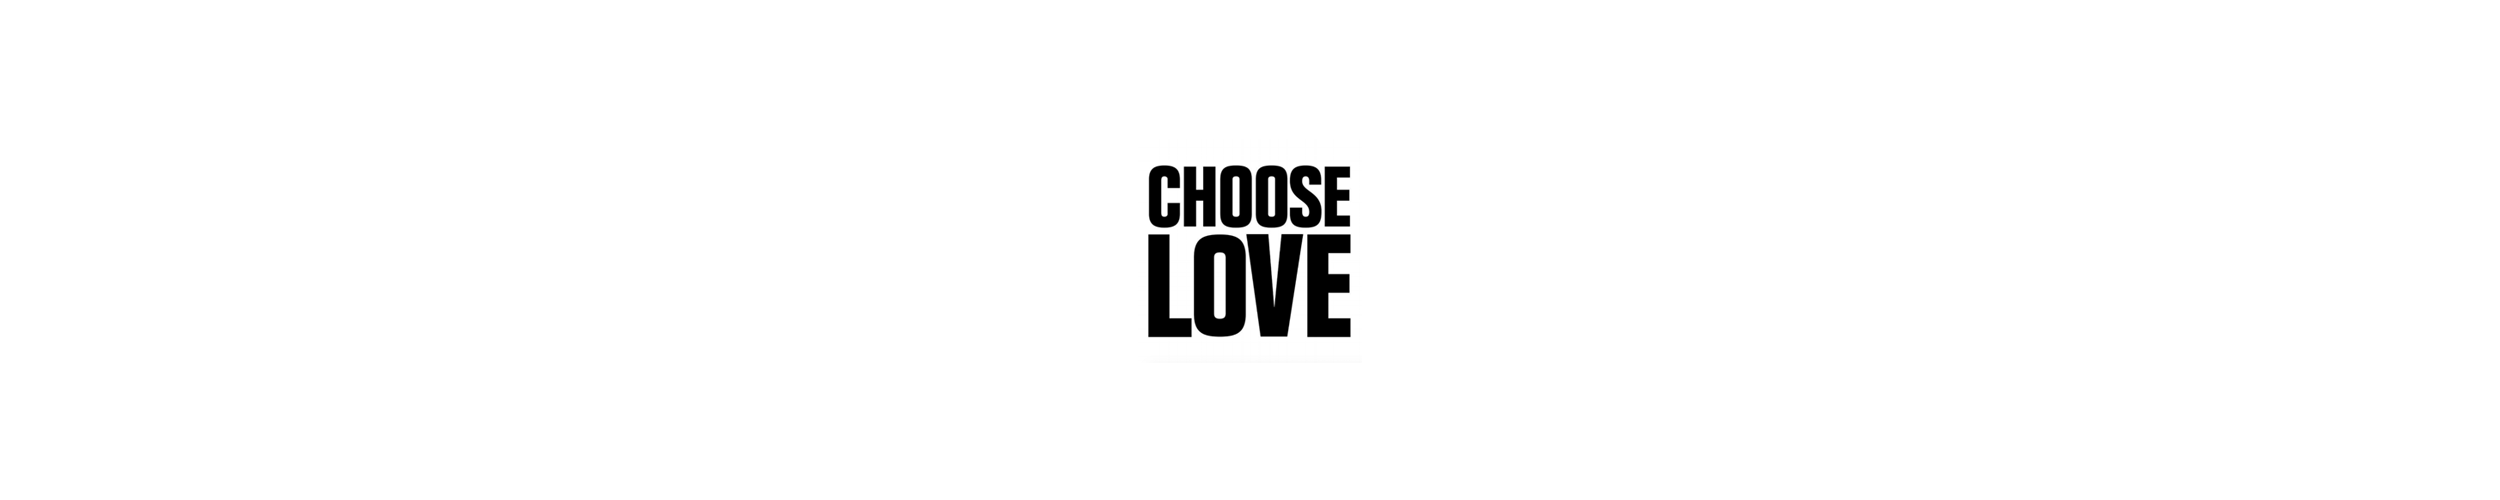 ChooseLove.png